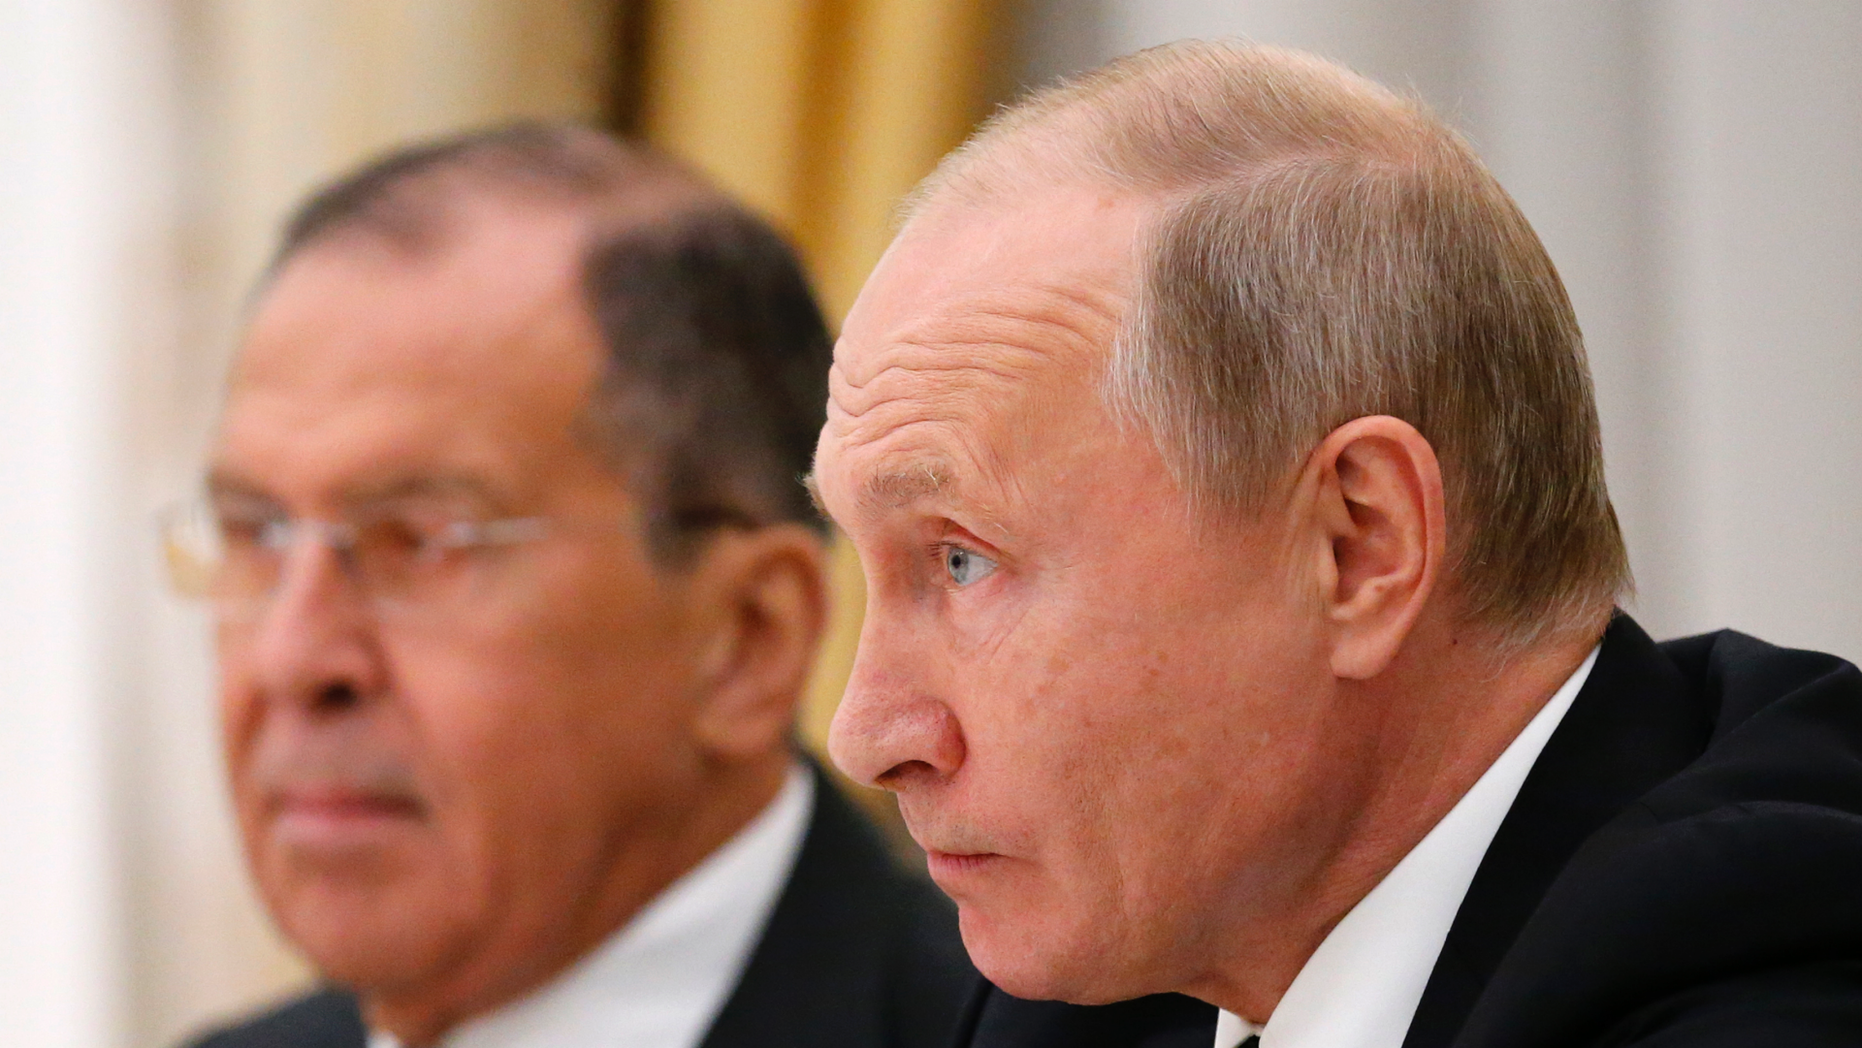 Russian President Vladimir Putin listens to U.S. National security adviser John Bolton during their meeting in the Kremlin in Moscow, Russia, Tuesday, Oct. 23, 2018, with Russian Foreign Minister Sergey Lavrov at left. (AP Photo/Alexander Zemlianichenko)